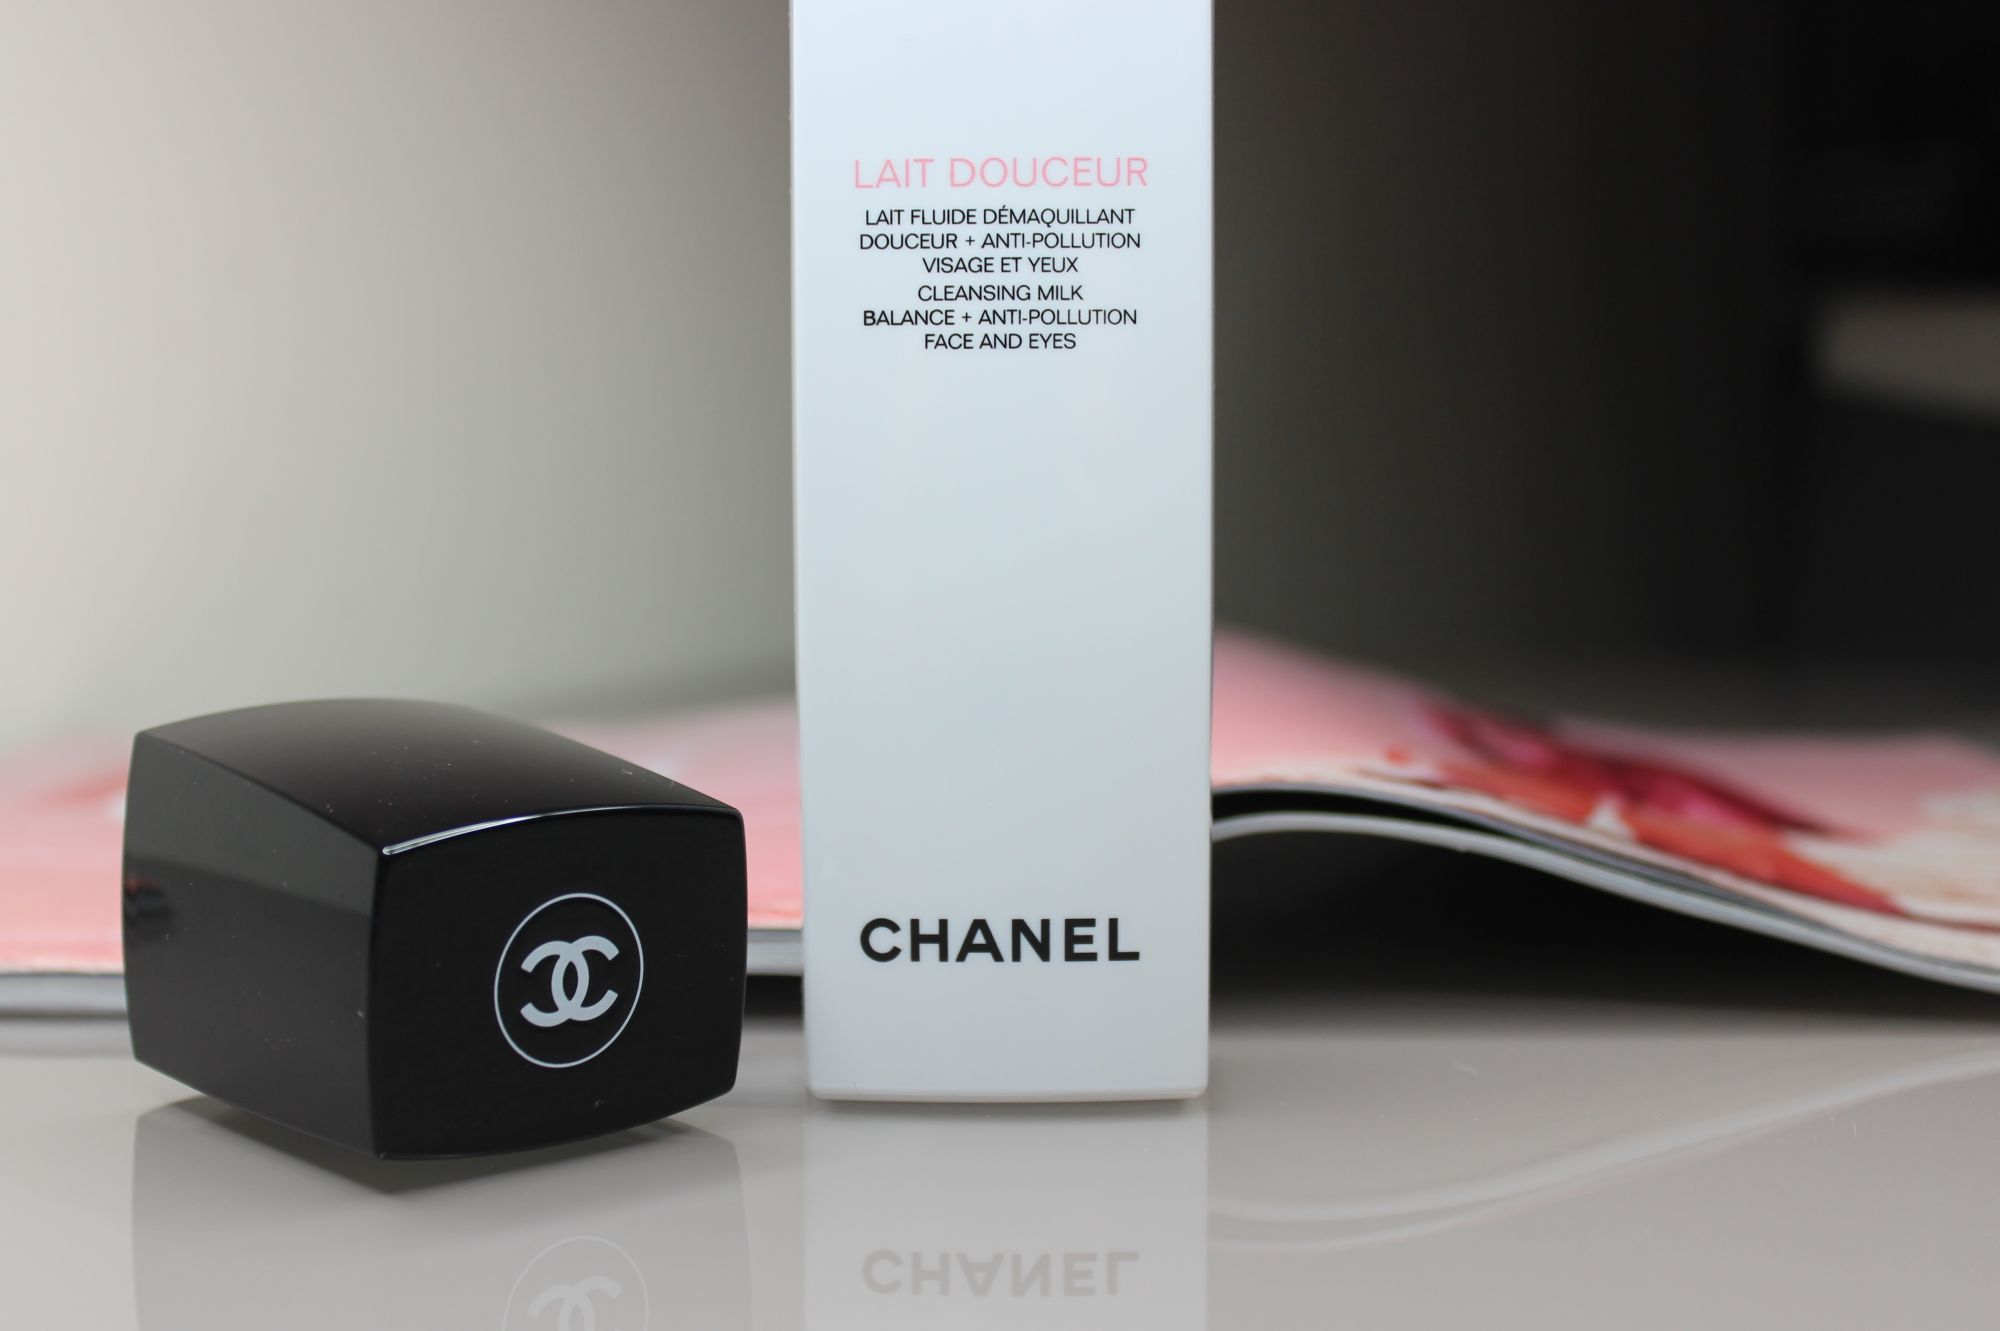 Chanel Cleansing Milk Balance + Anti Pollution Face and Eyes